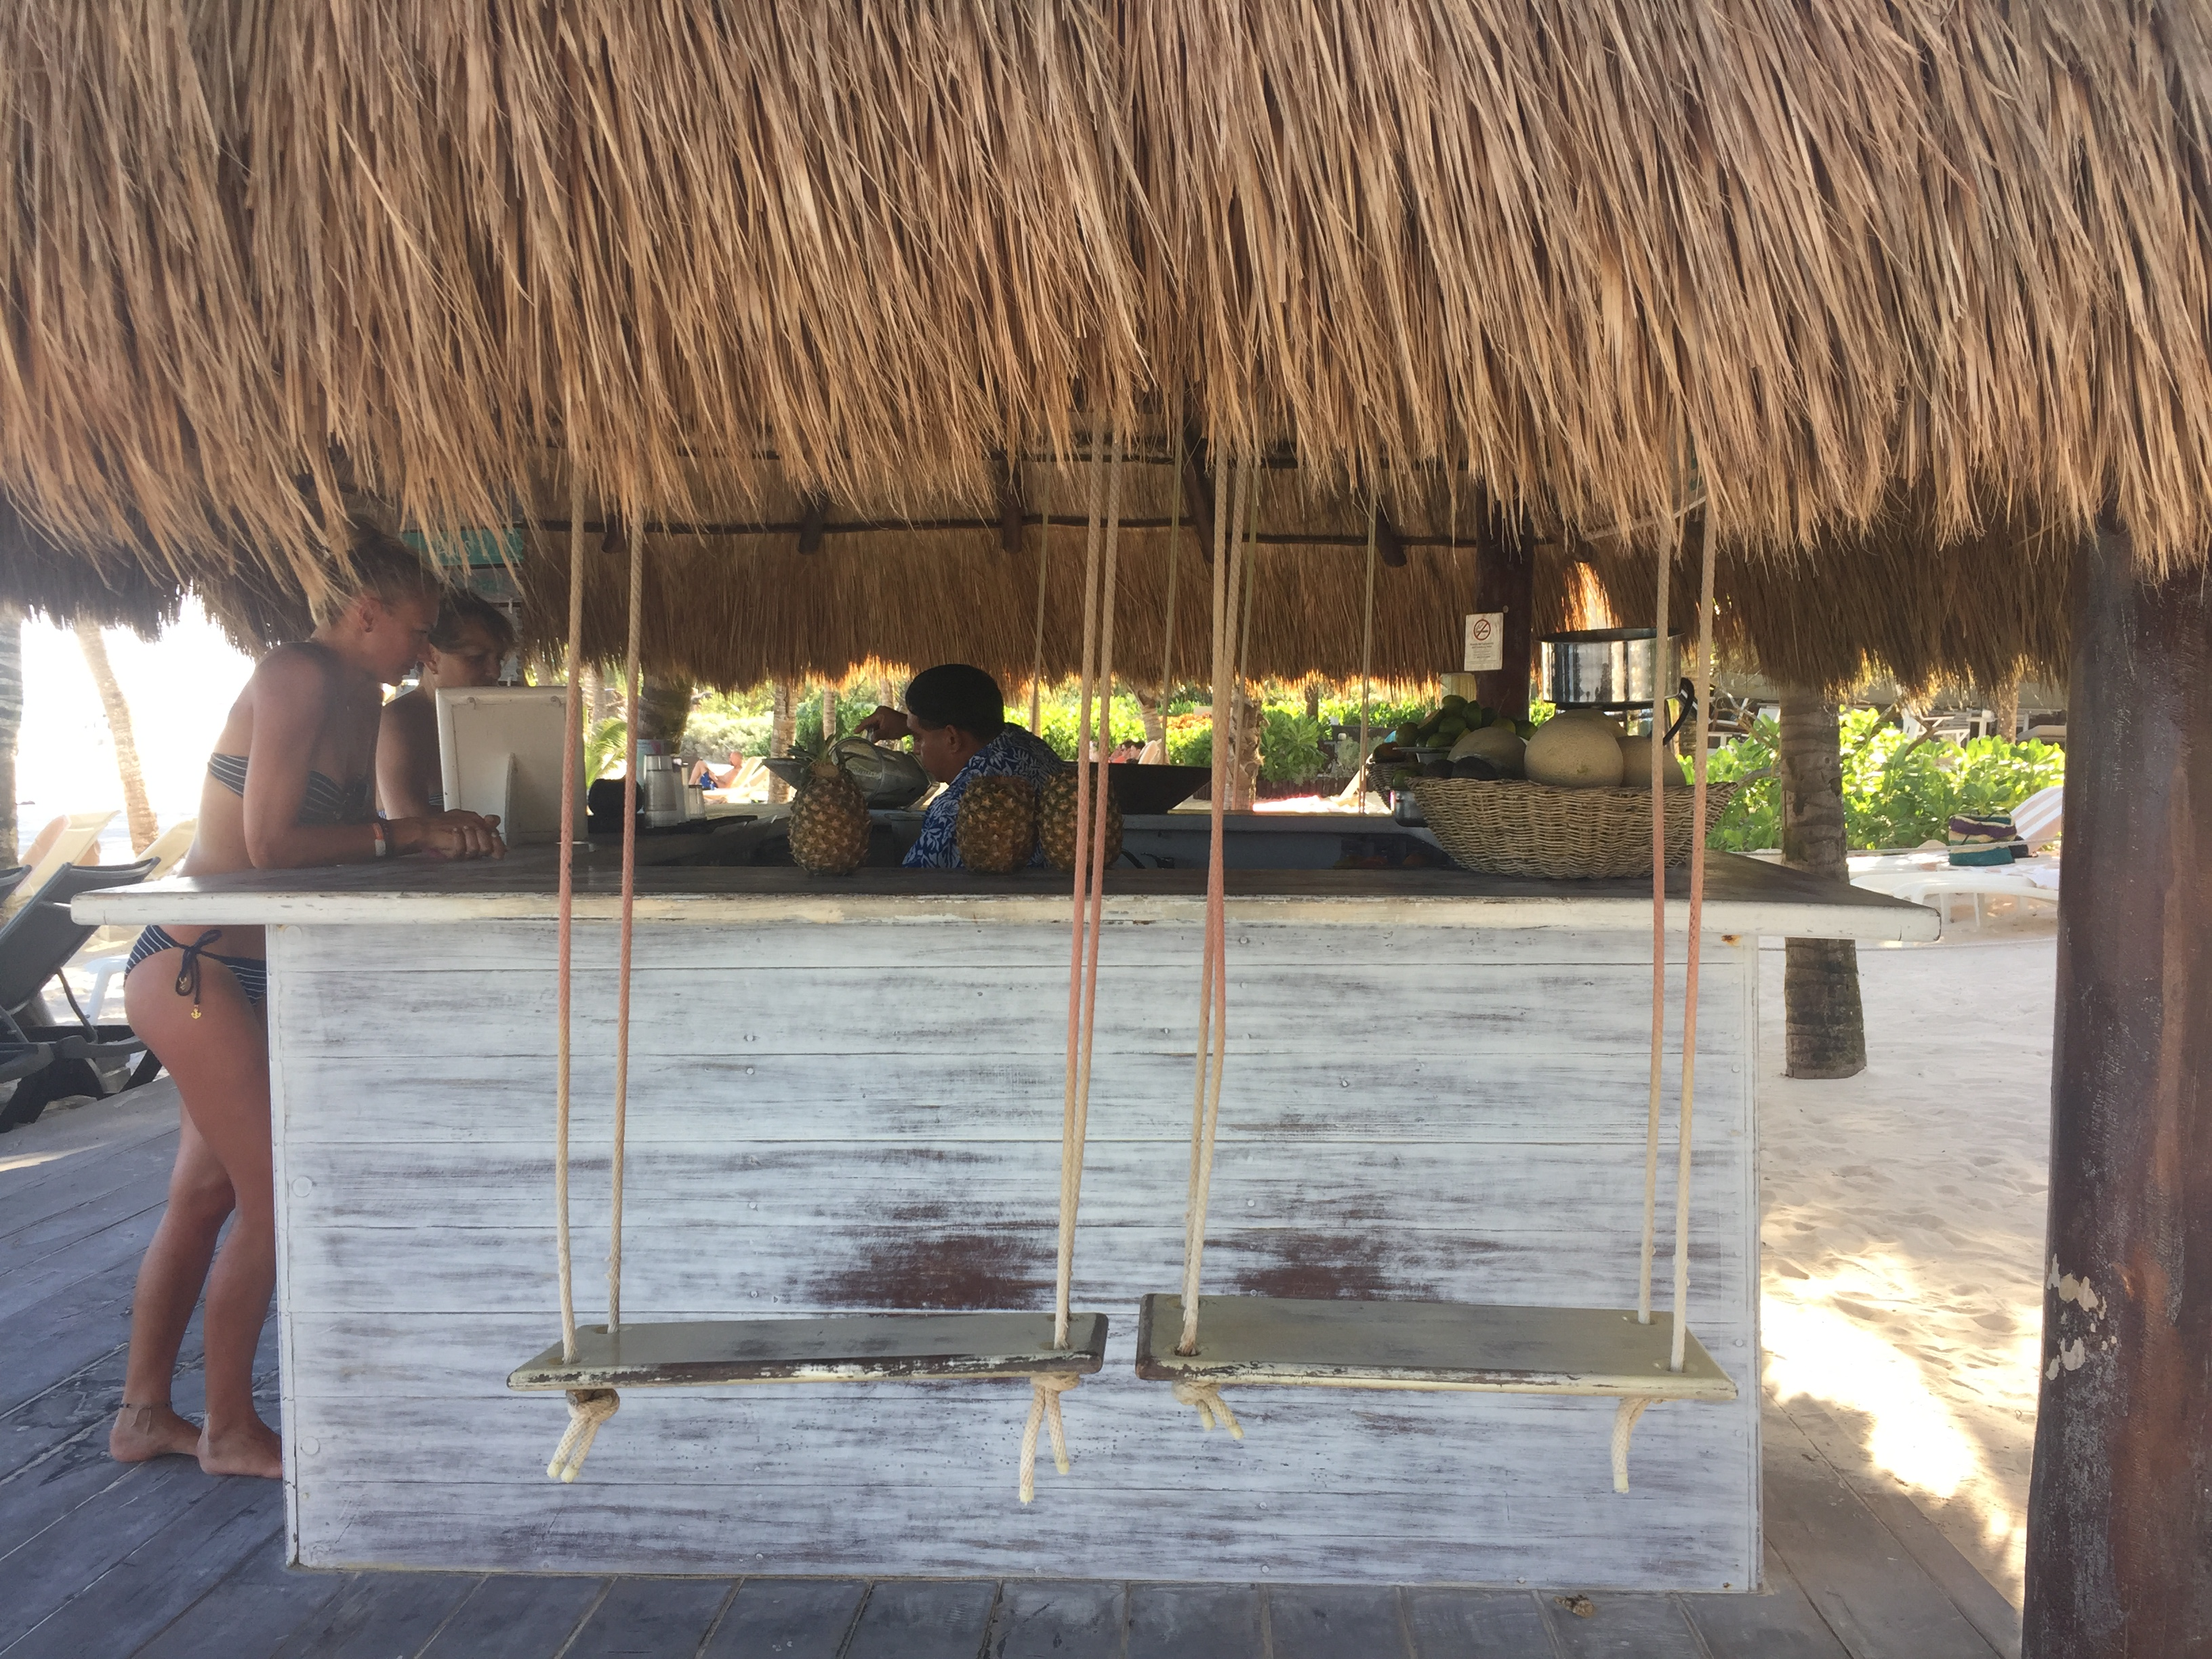 Bar de jugos que puedes encontrar en la playa.